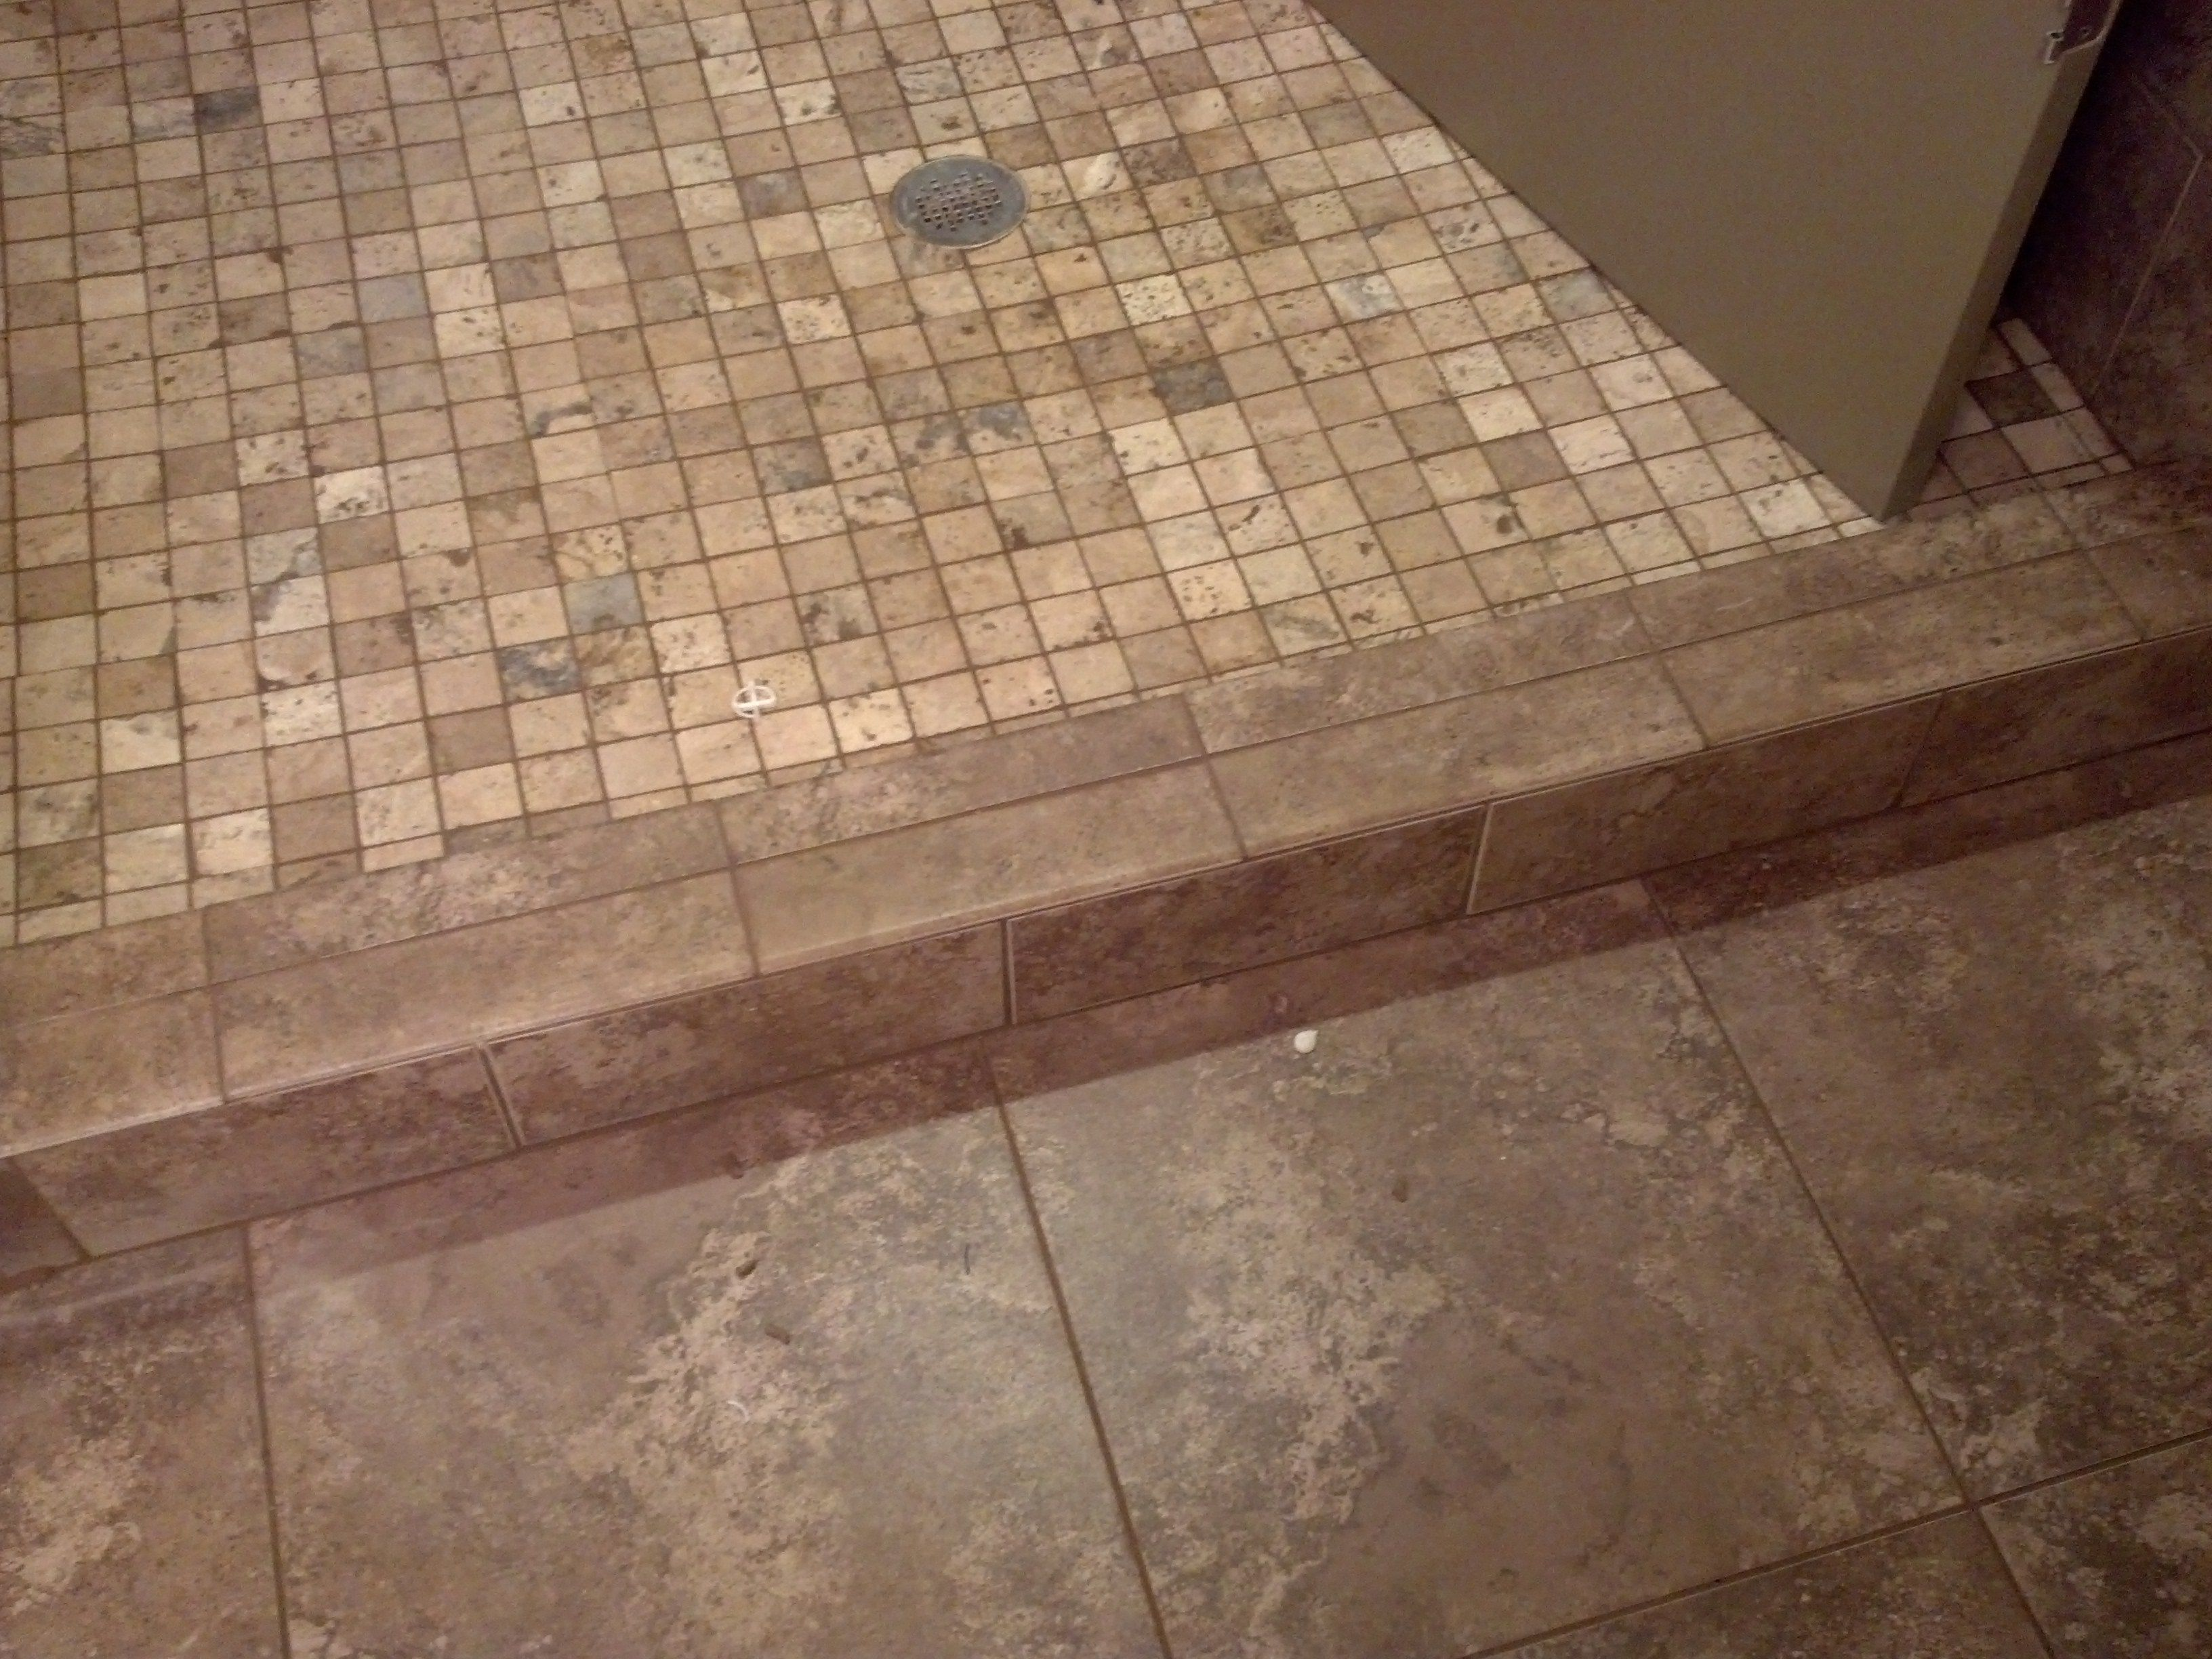 Shower Curb Tile Ideas Non Slip Bathroom Flooring Rustic Tile Floor Tile Bathroom